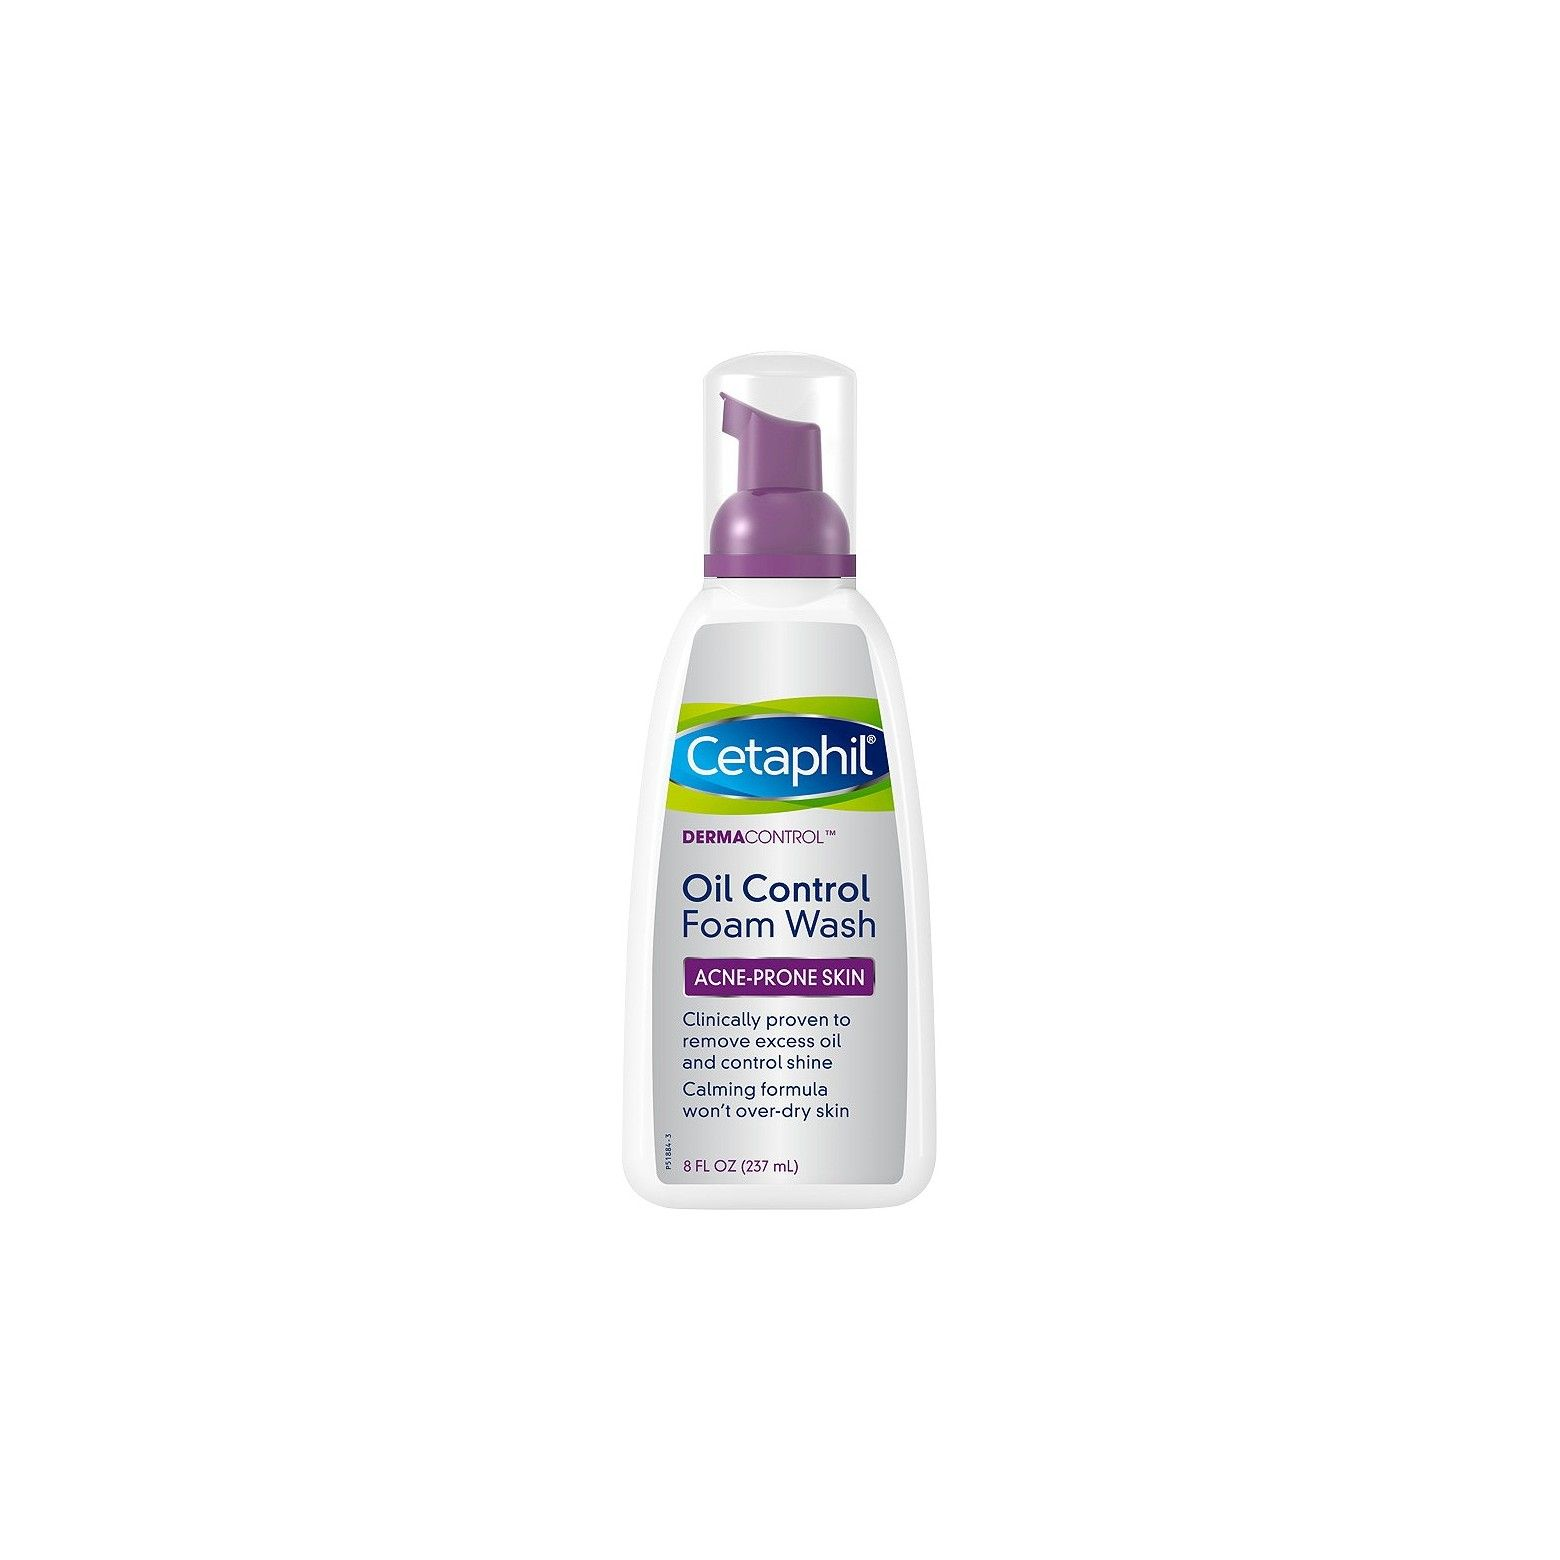 Cetaphil Pro Oil Removing Foam Wash 8oz Oil Control Products Skin Cleanser Products Cetaphil